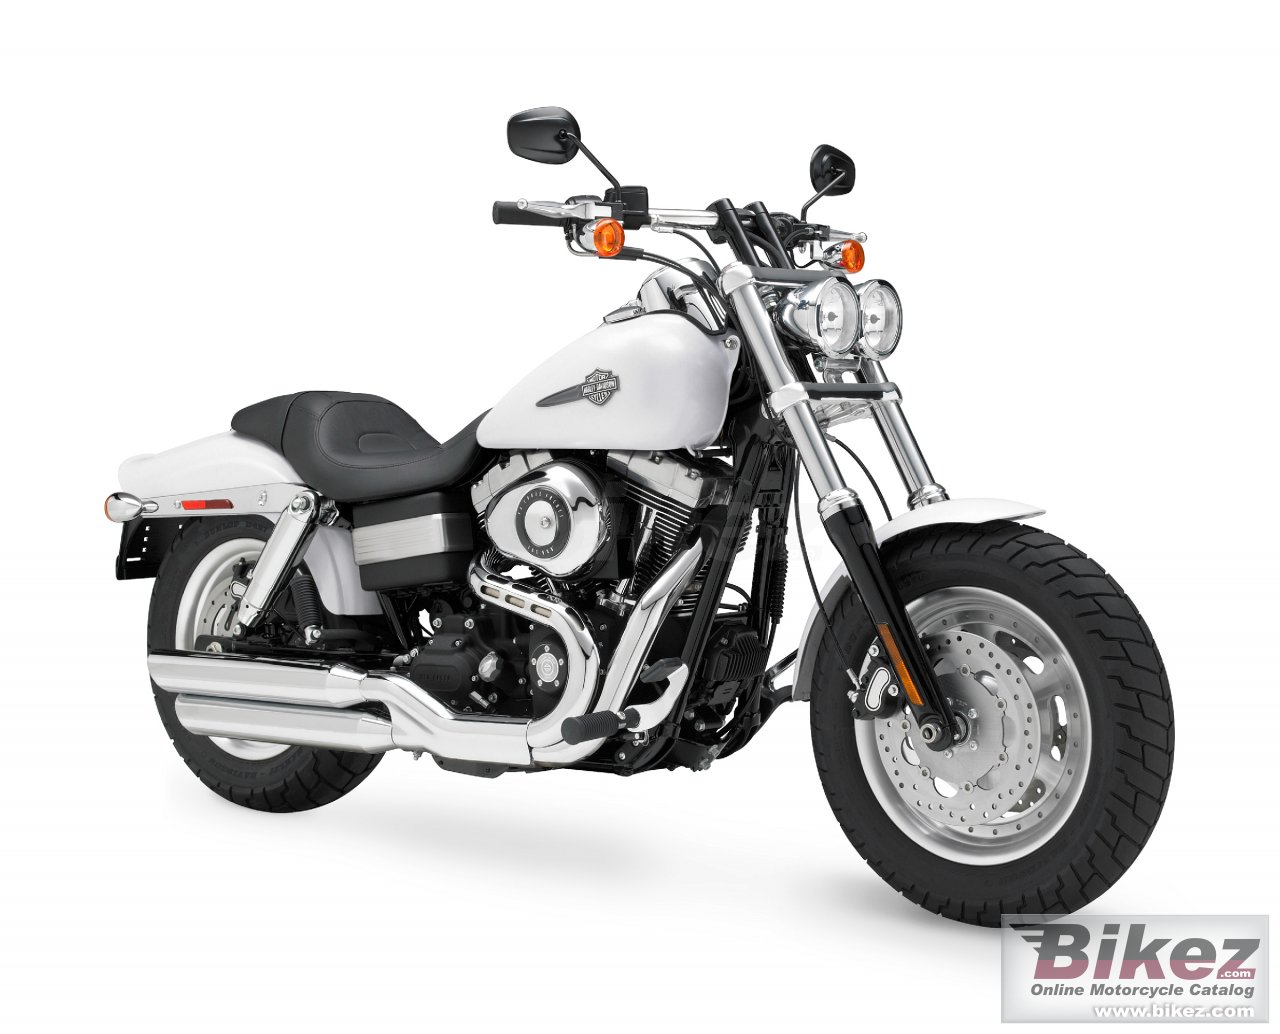 Big Harley-Davidson fxdf fat bob picture and wallpaper from Bikez.com